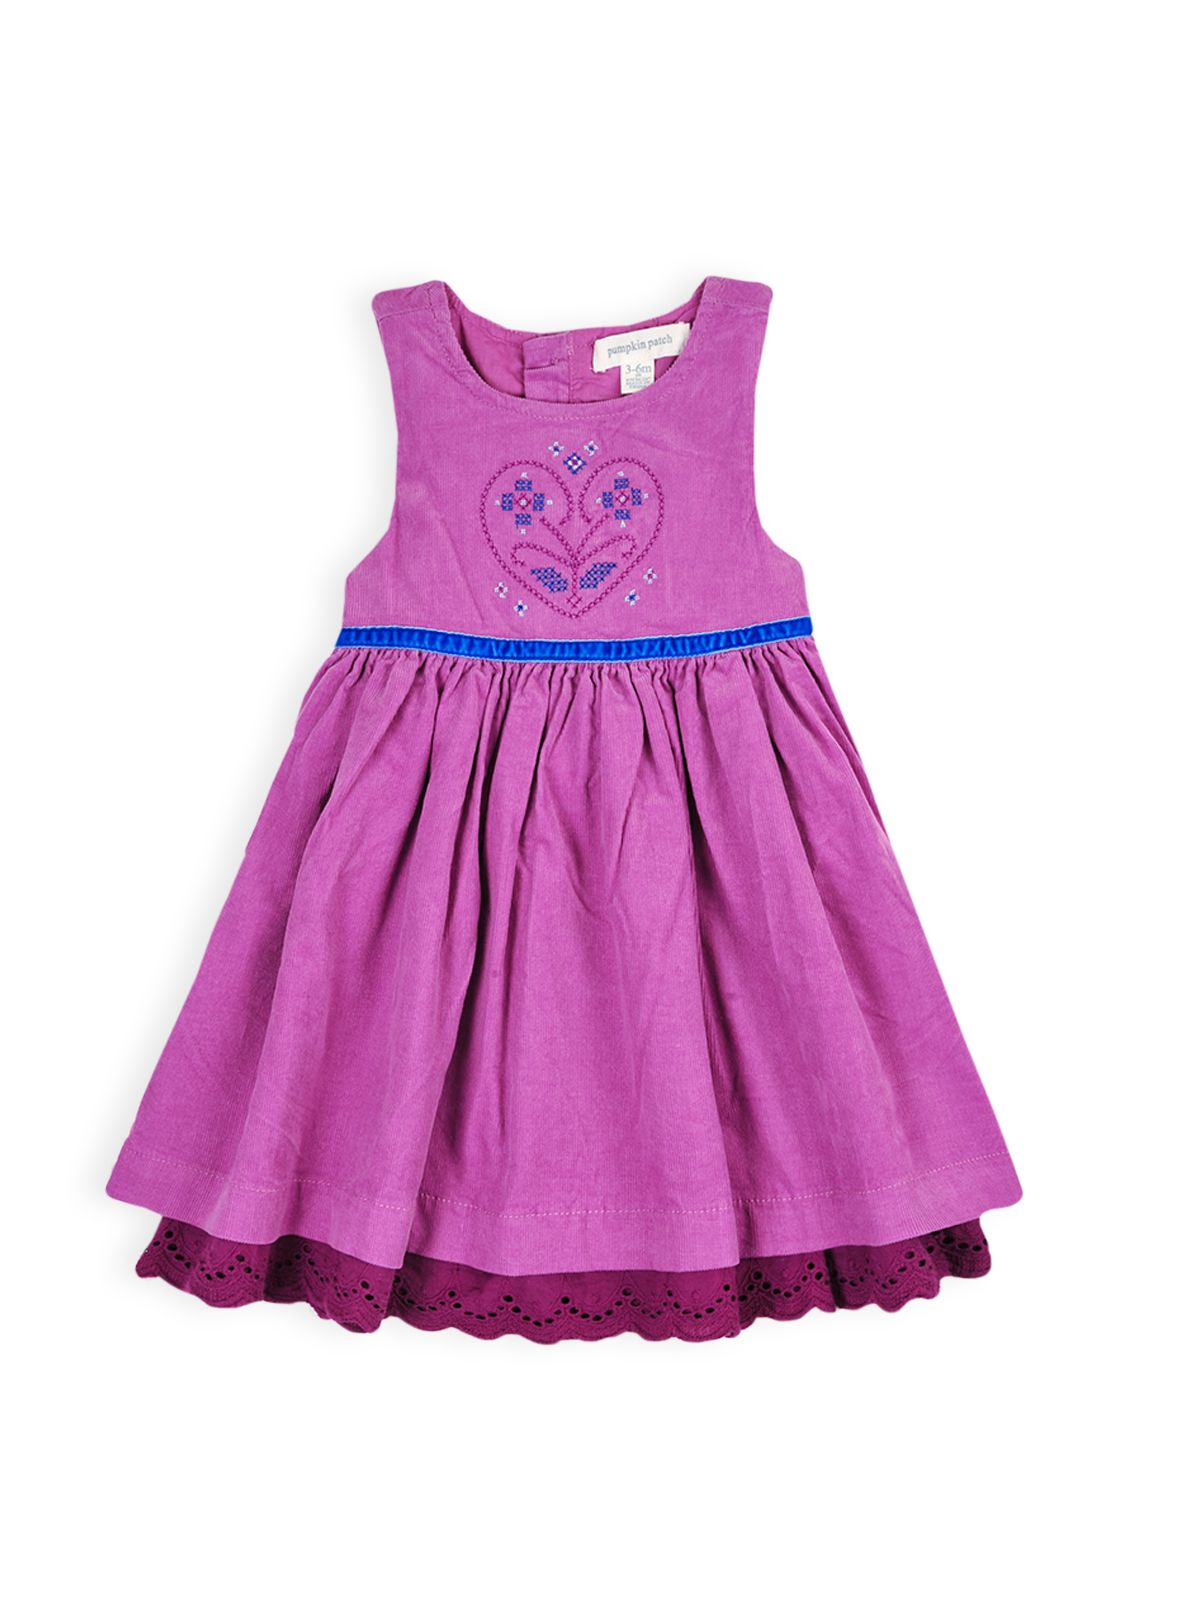 Girls baby cord pinnie with petticoat